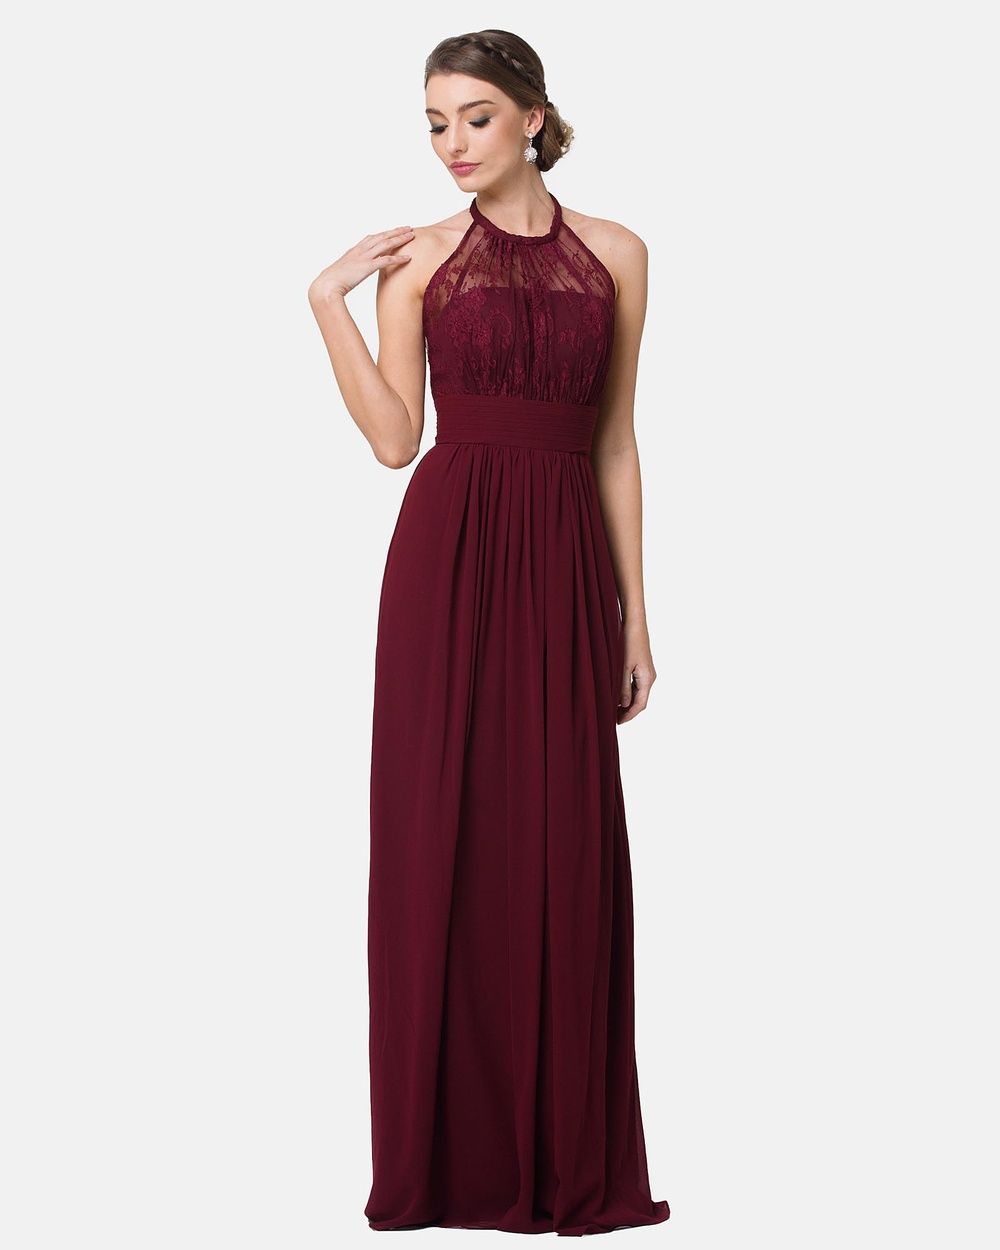 Tania Olsen Designs Harlow Dress Bridesmaid Dresses Merlot Harlow Dress